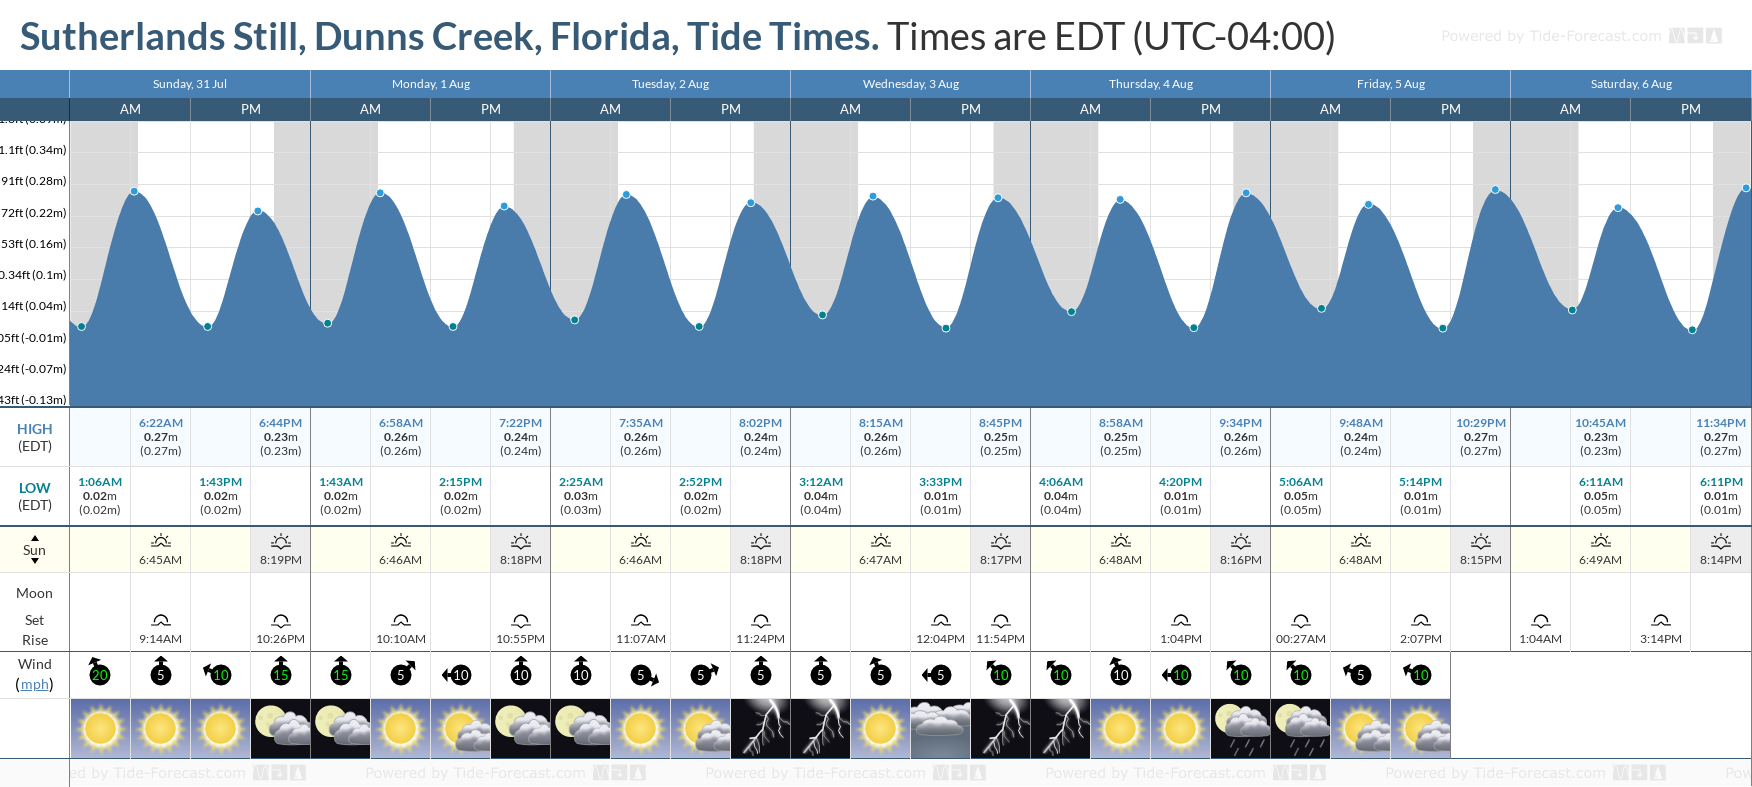 Sutherlands Still, Dunns Creek, Florida Tide Chart including high and low tide tide times for the next 7 days